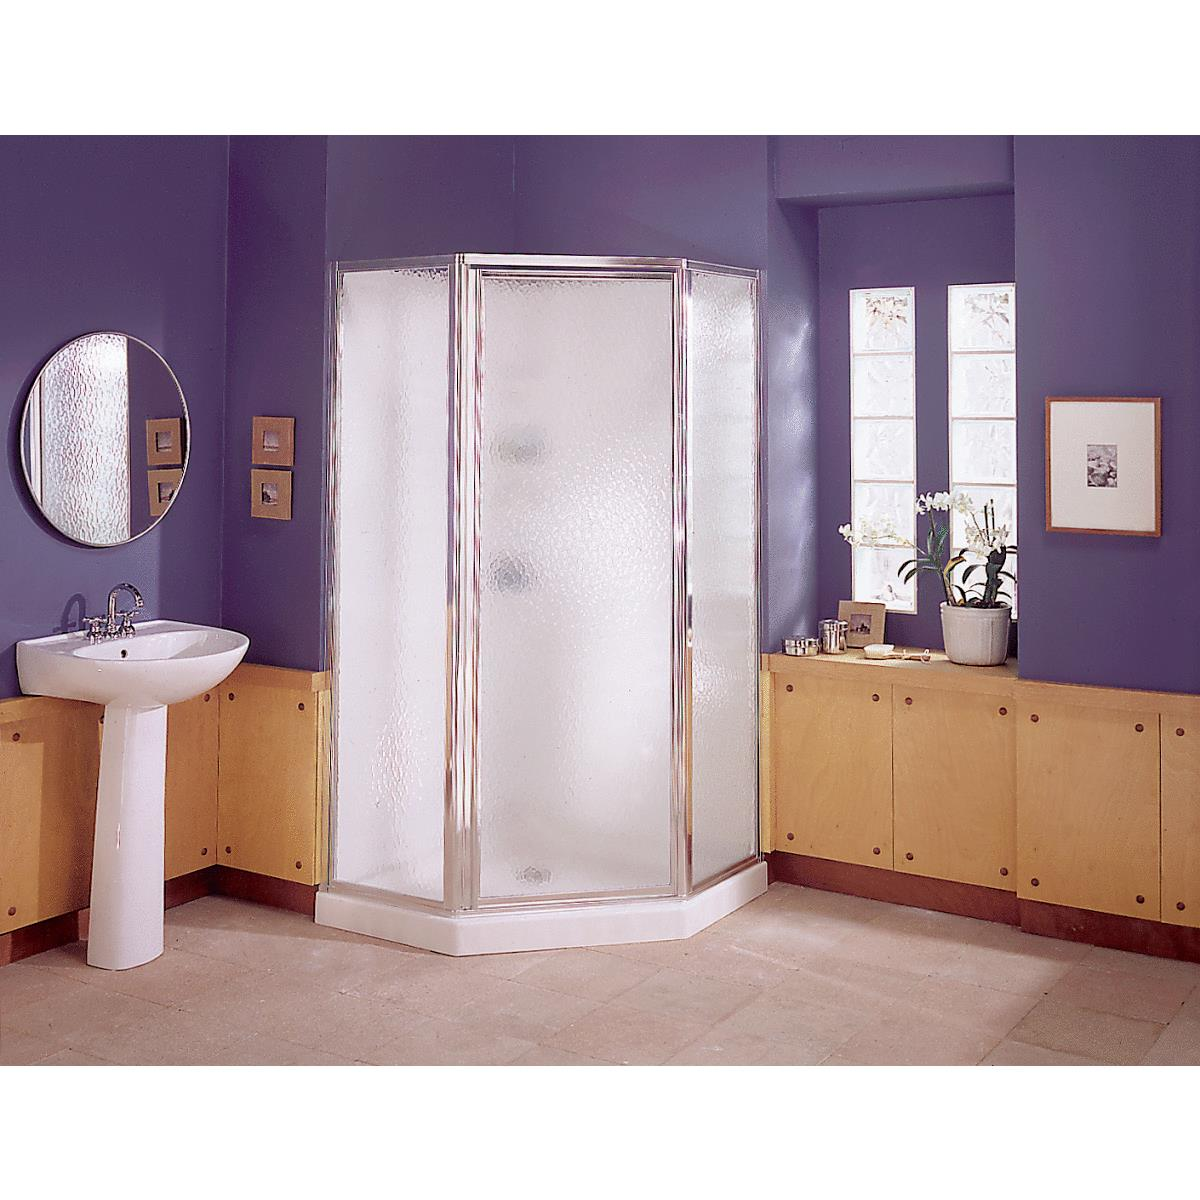 Neo Angle Shower System Connolly S Do It Best Hardware